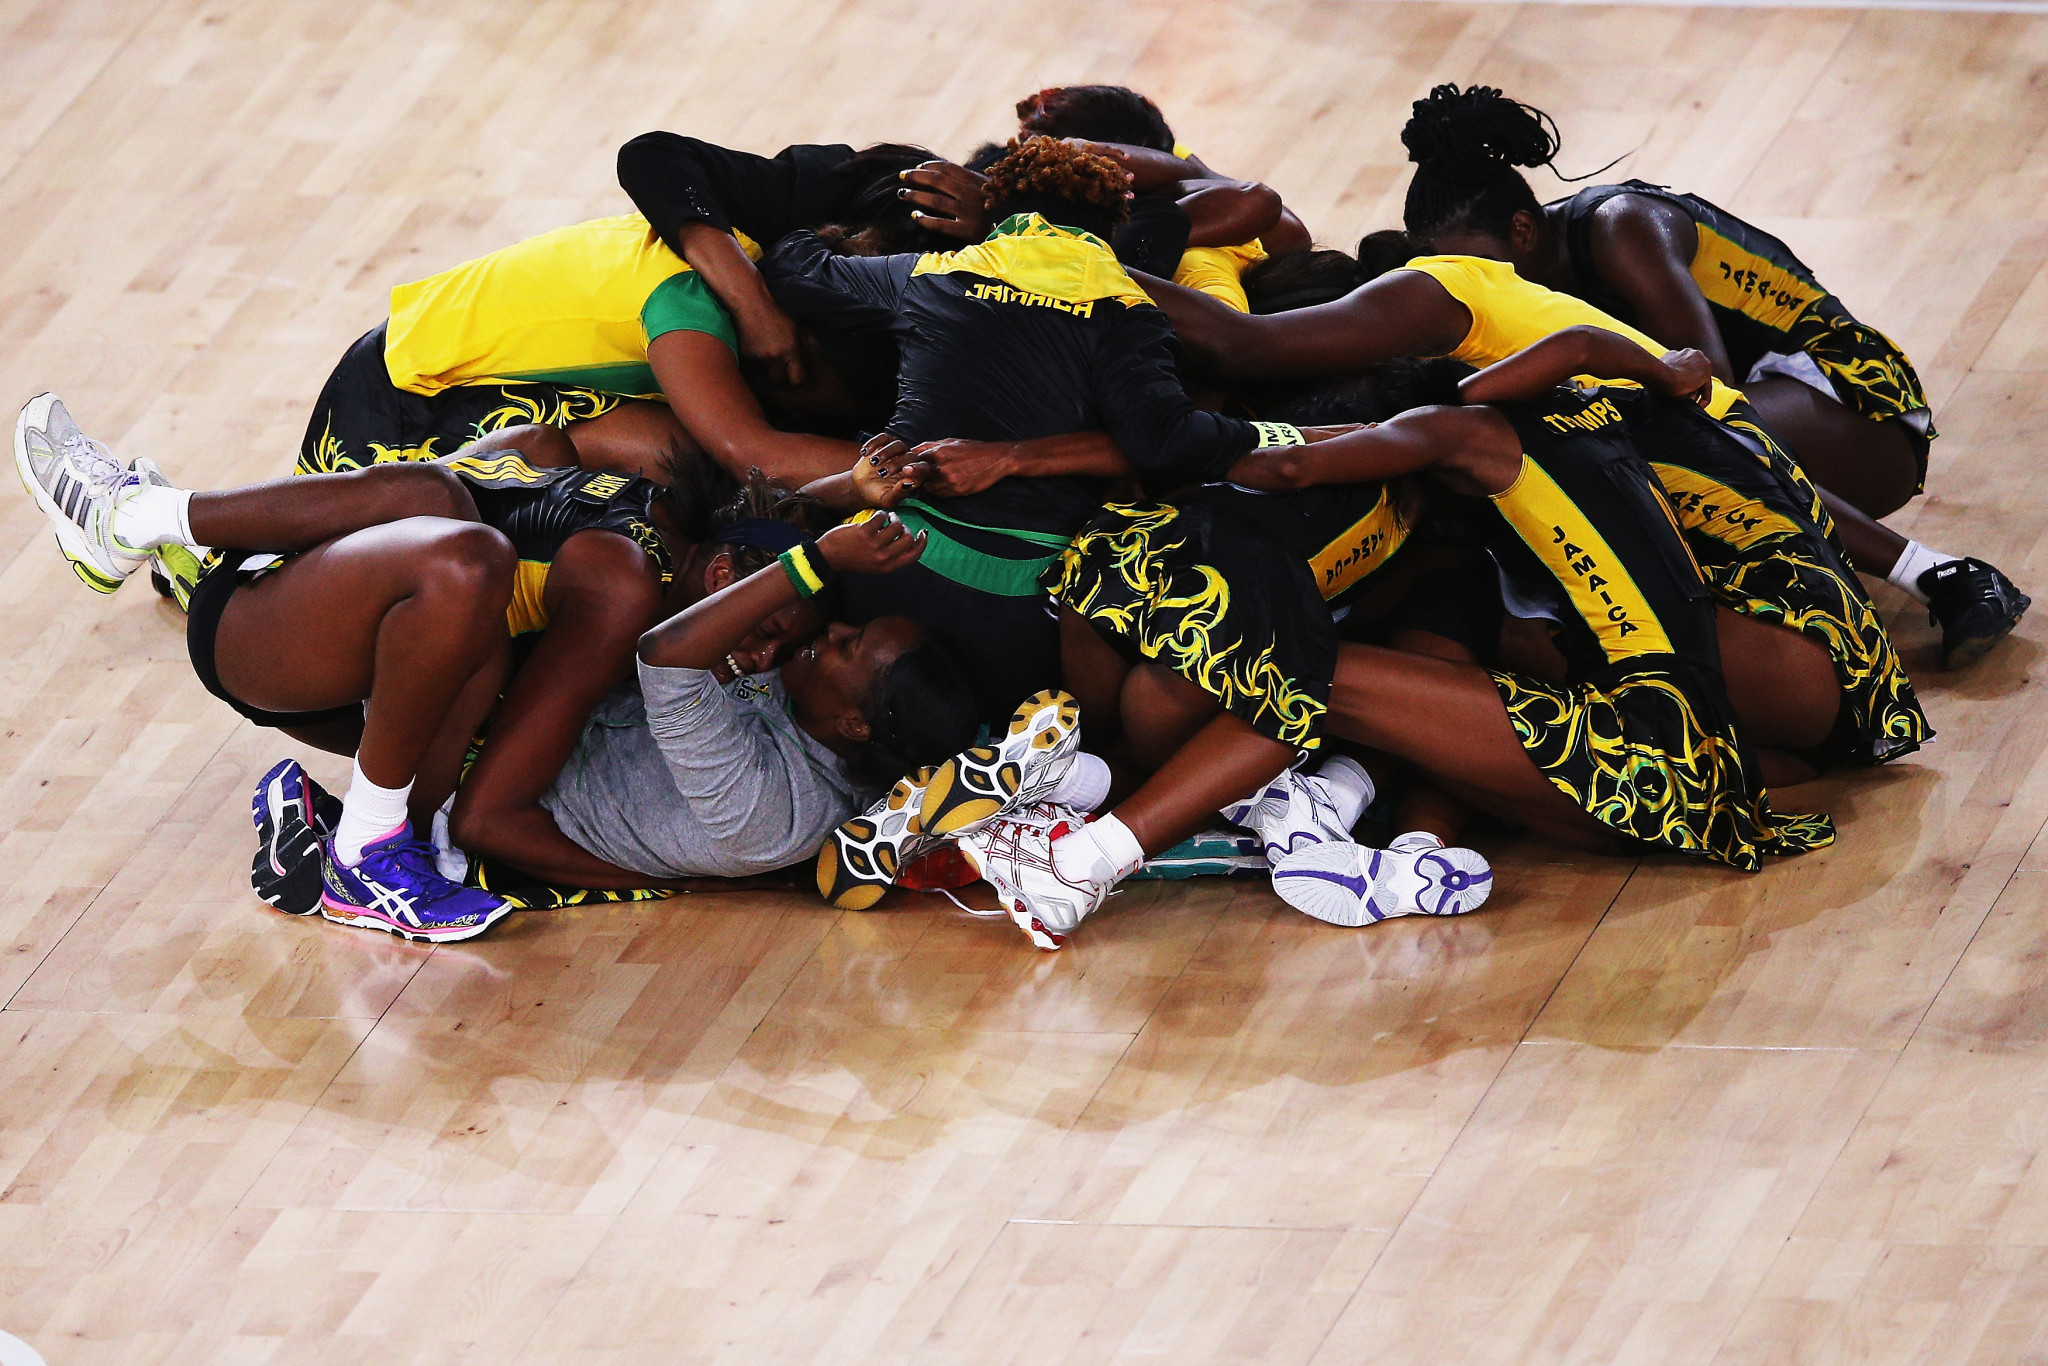 Jamaica celebrate winning a Commonwealth Games bronze medal in netball at Glasgow 2014 ©Getty Images